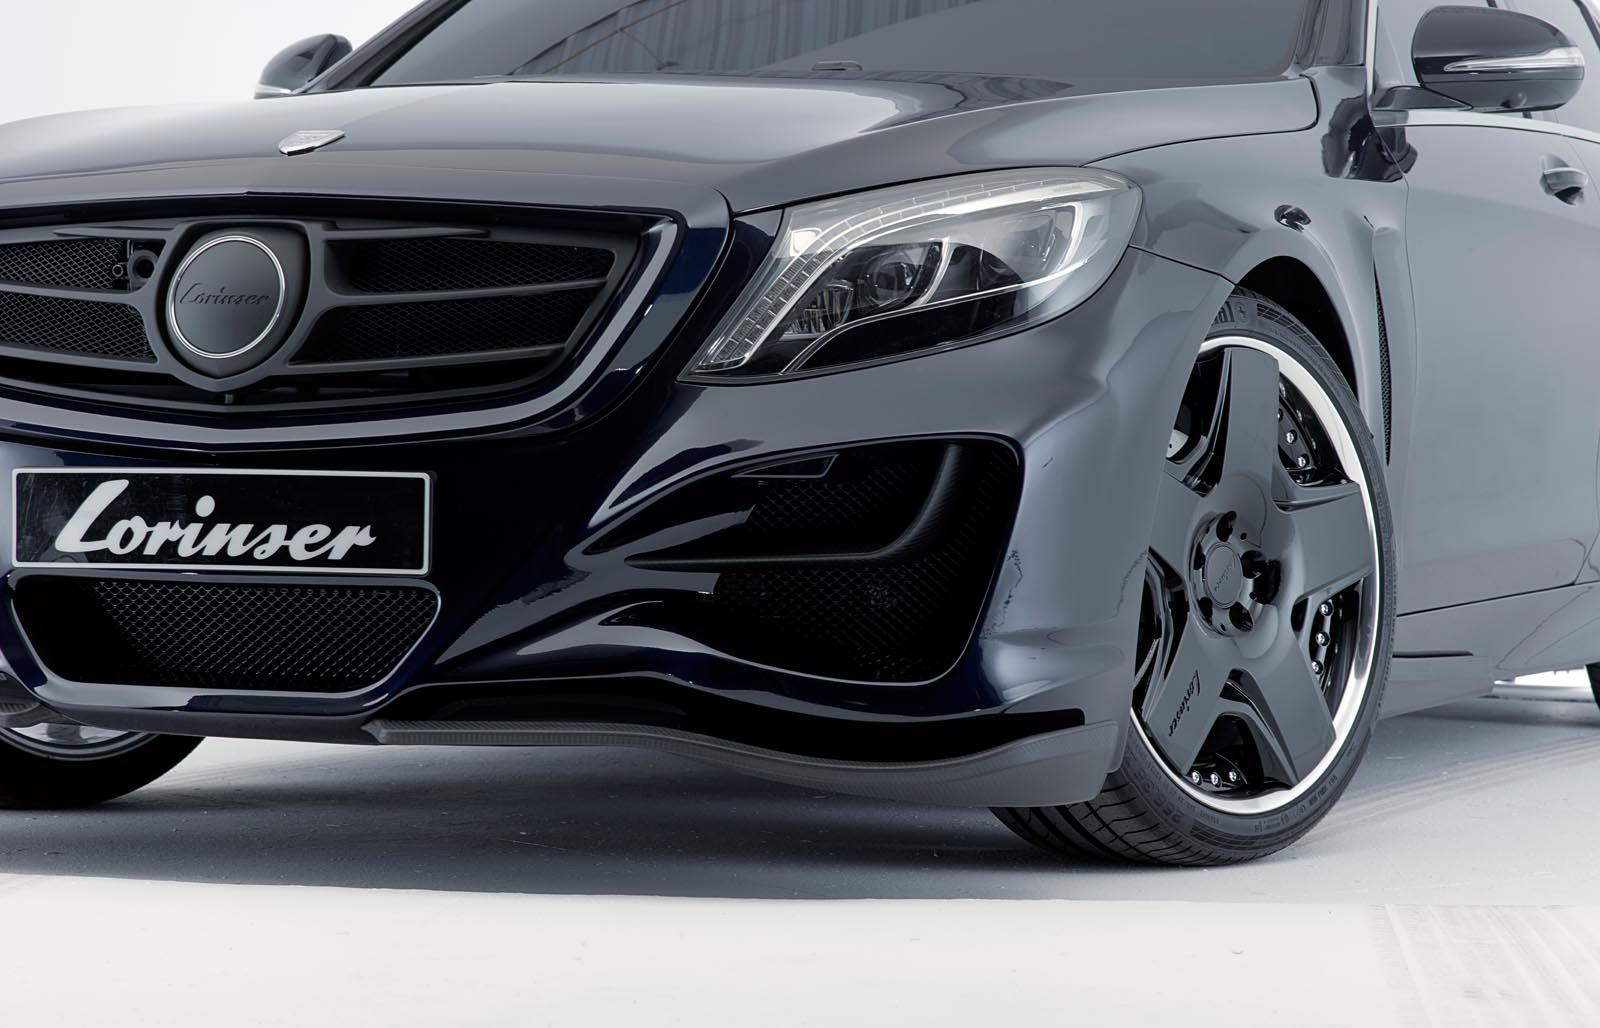 2014 Mercedes S-Class By Lorinser | Top Speed